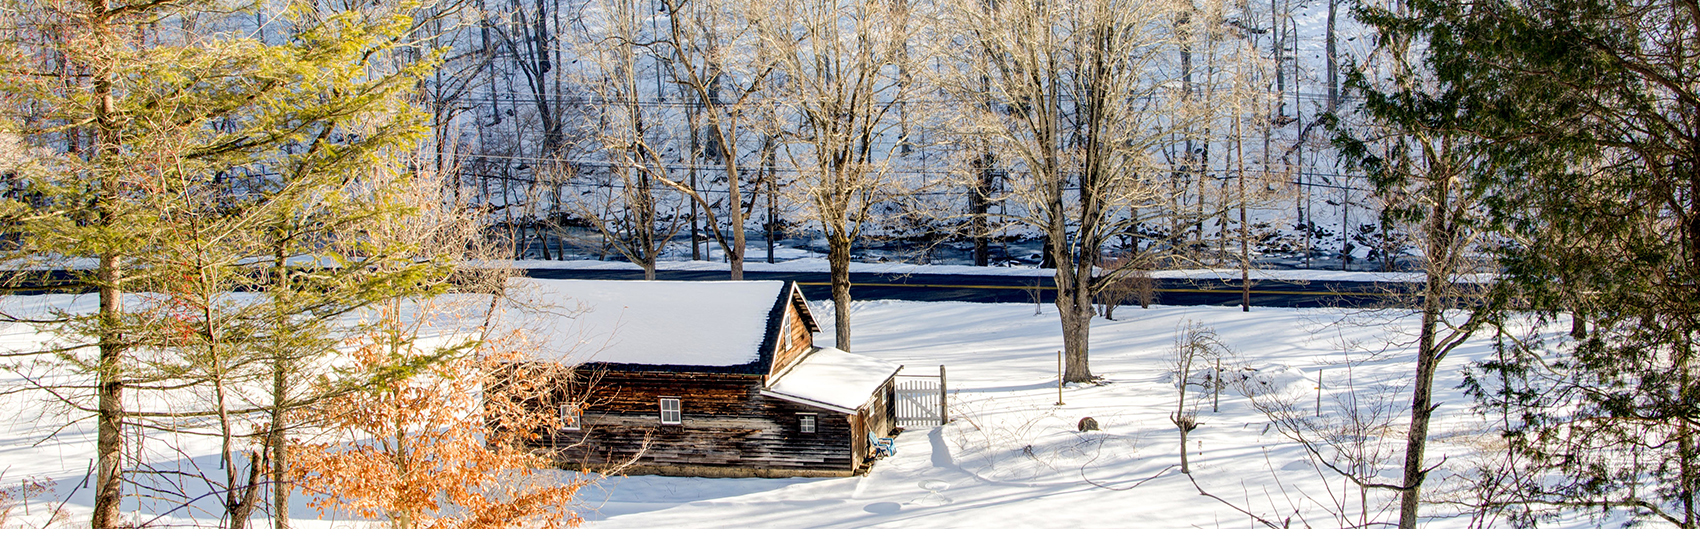 5 Maintenance Tasks to Prepare Your Home for Winter